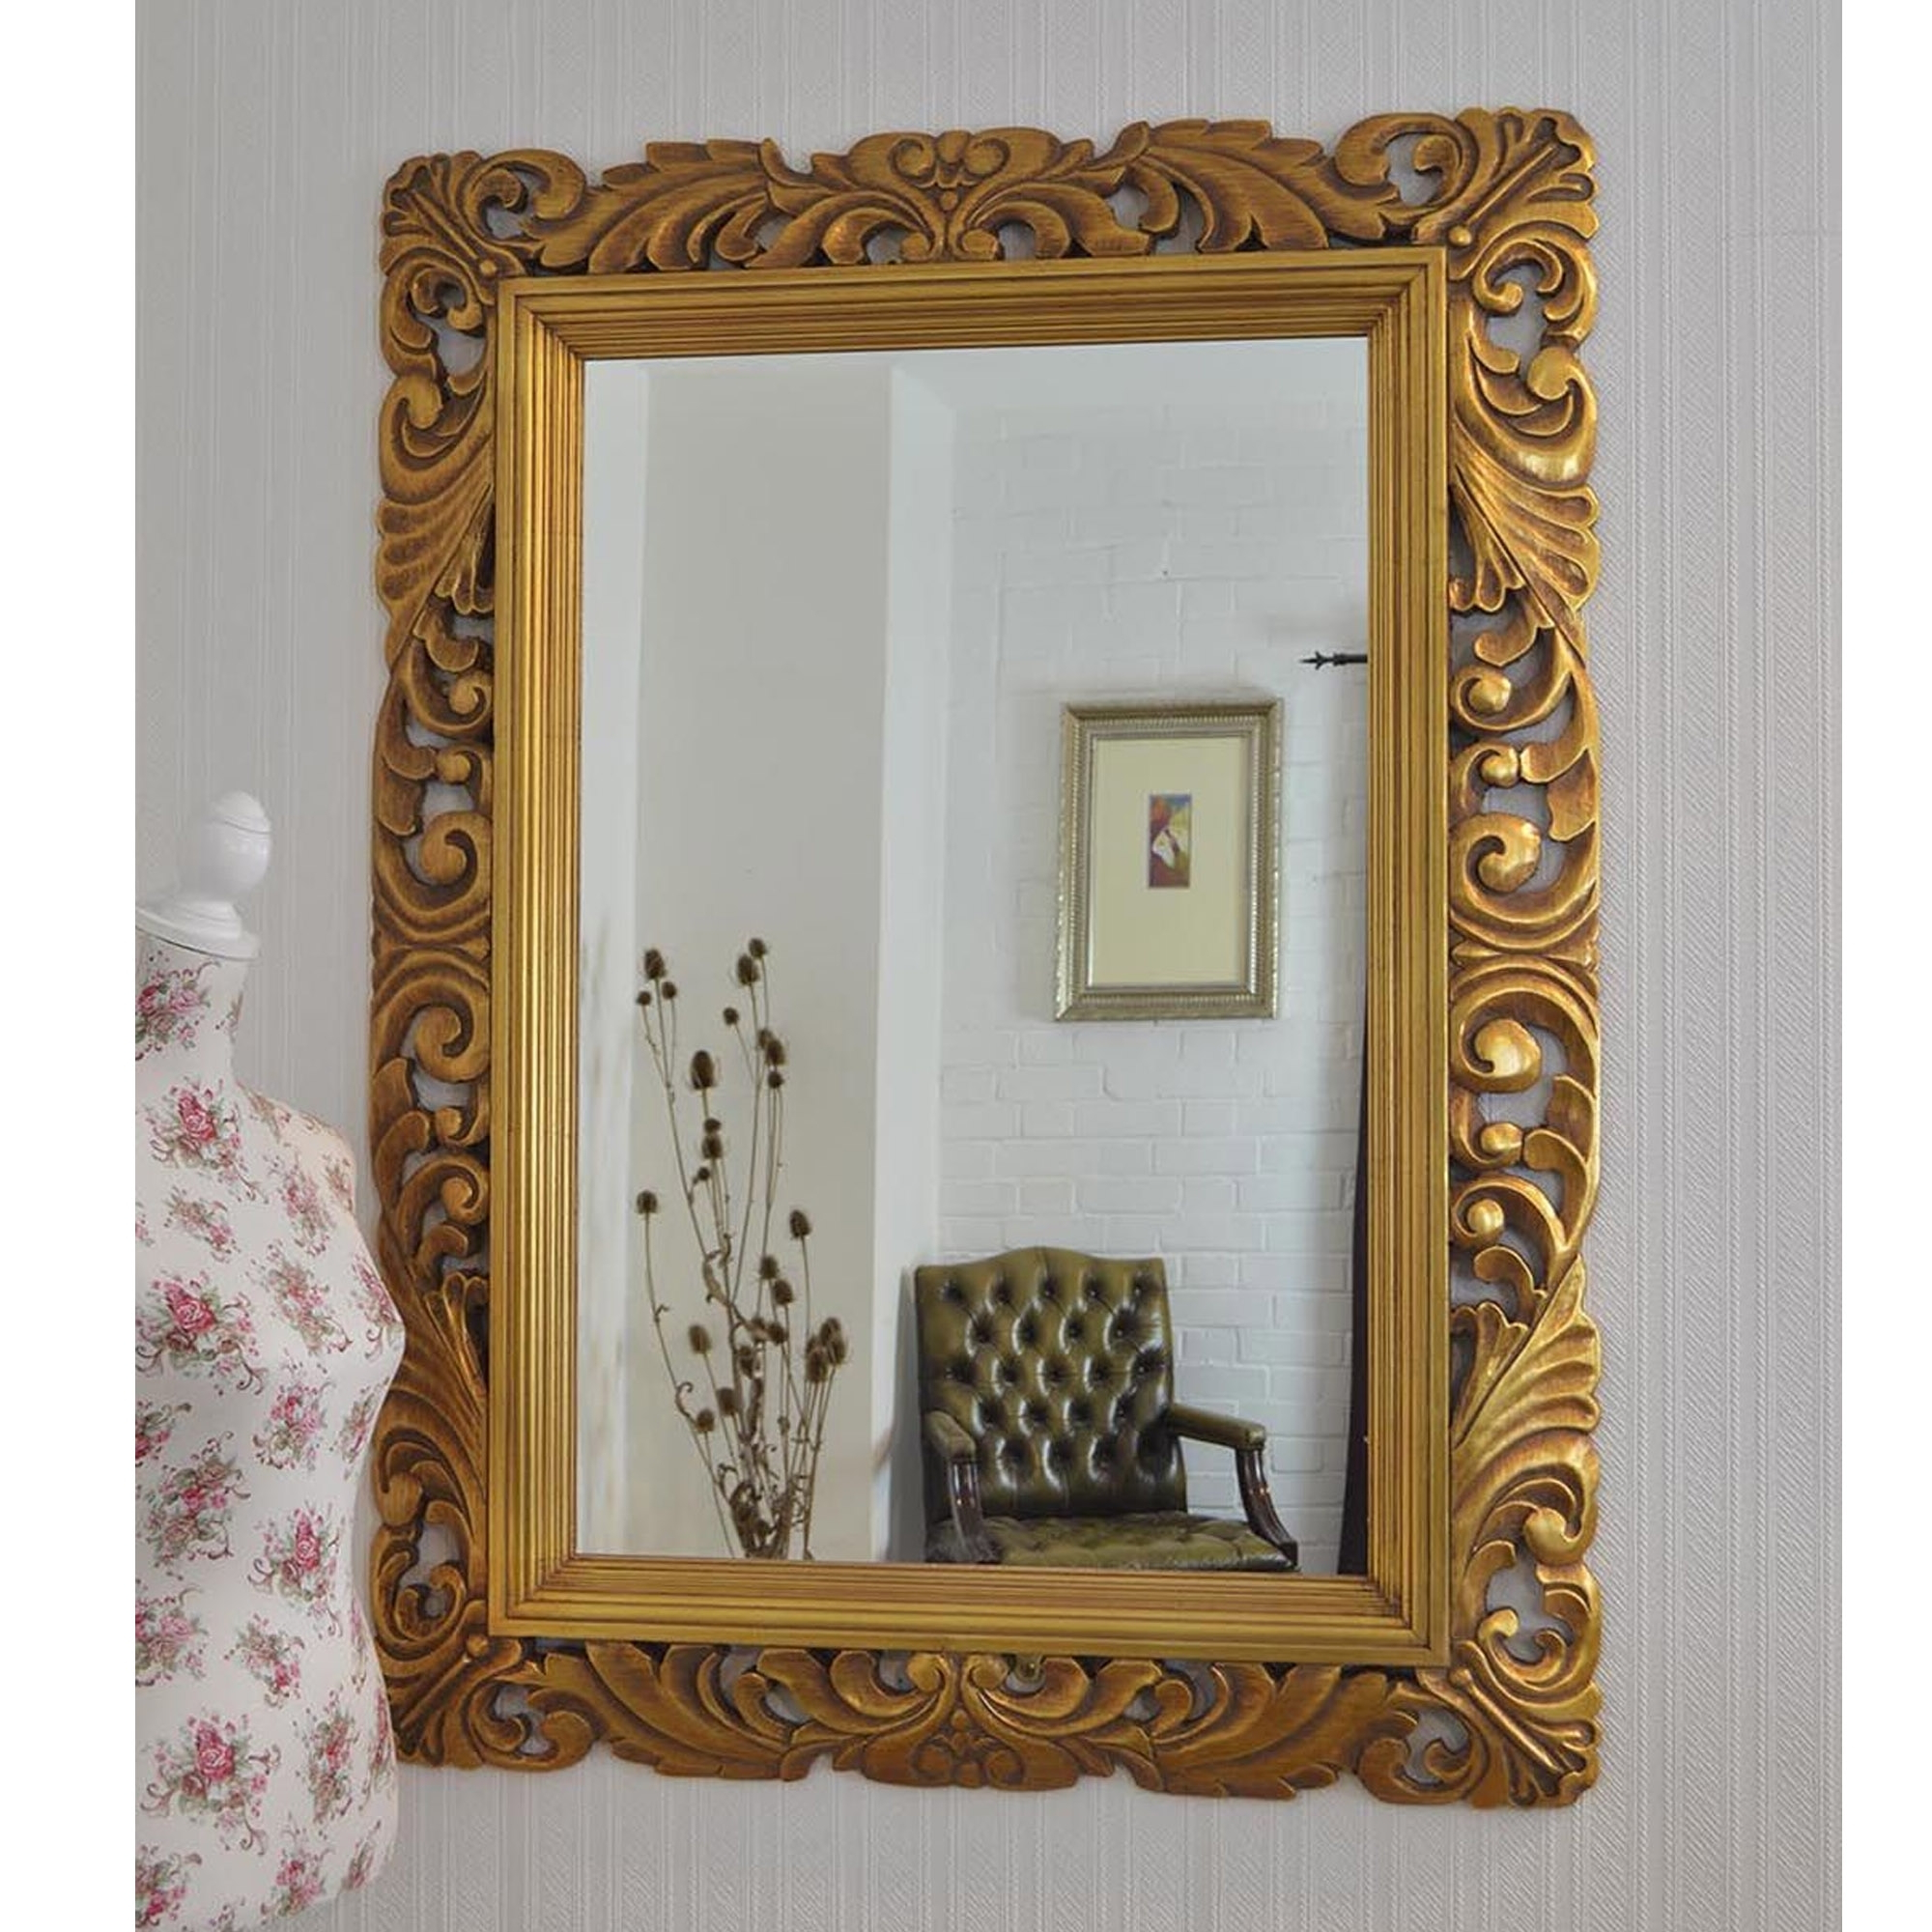 Gold Wall Mirrors Within Current Ornate Framed Gold Antique French Style Wall Mirror (View 20 of 20)